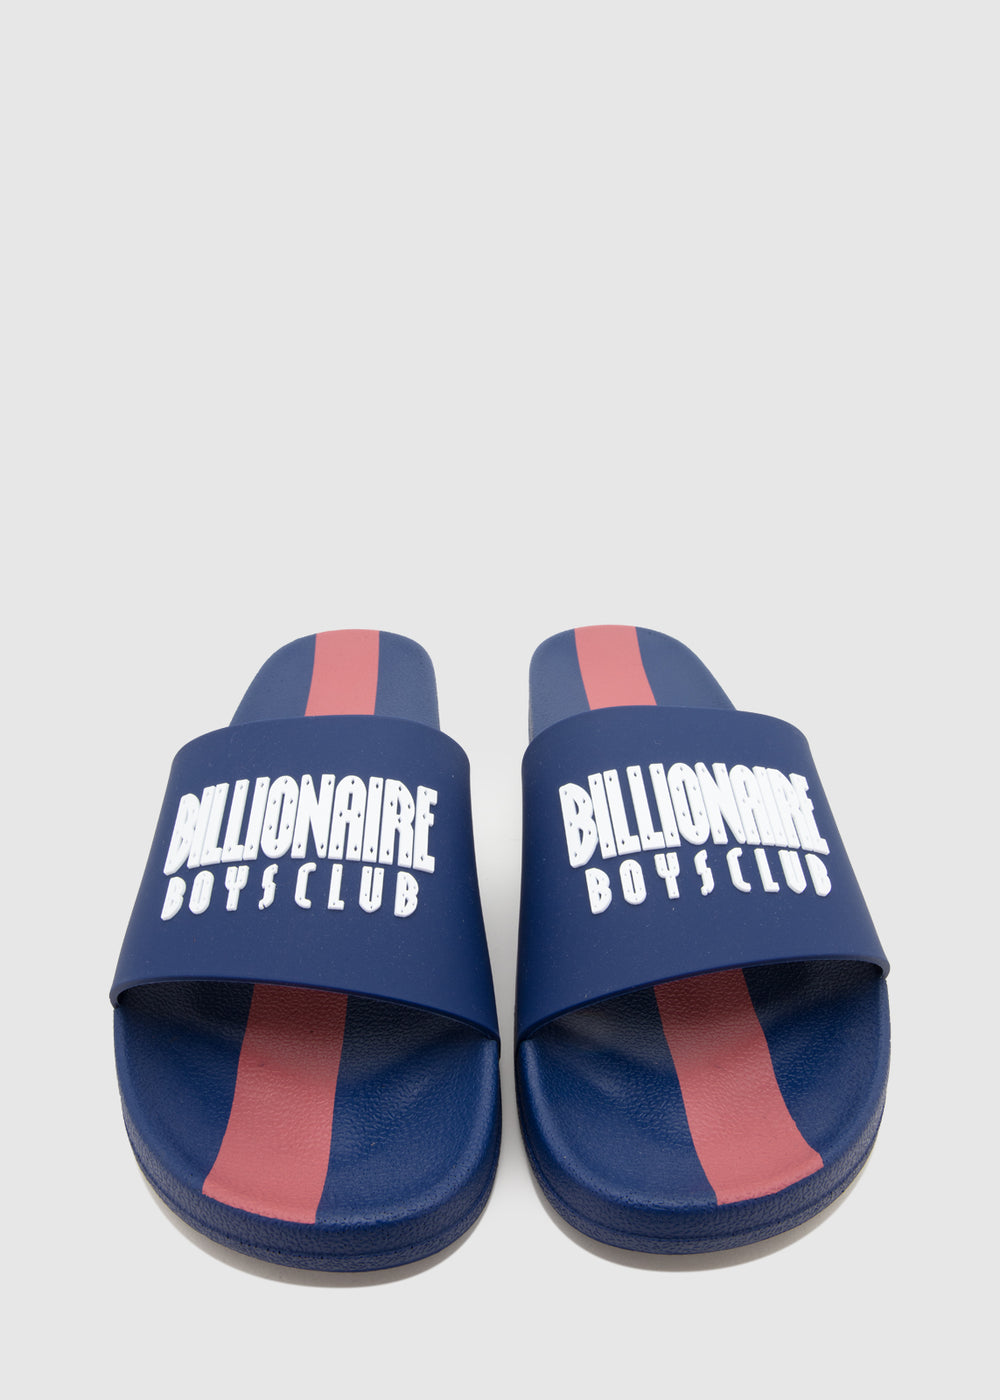 billionaire-boys-club-bbc-slides-891-6804-nvy-nvy-3